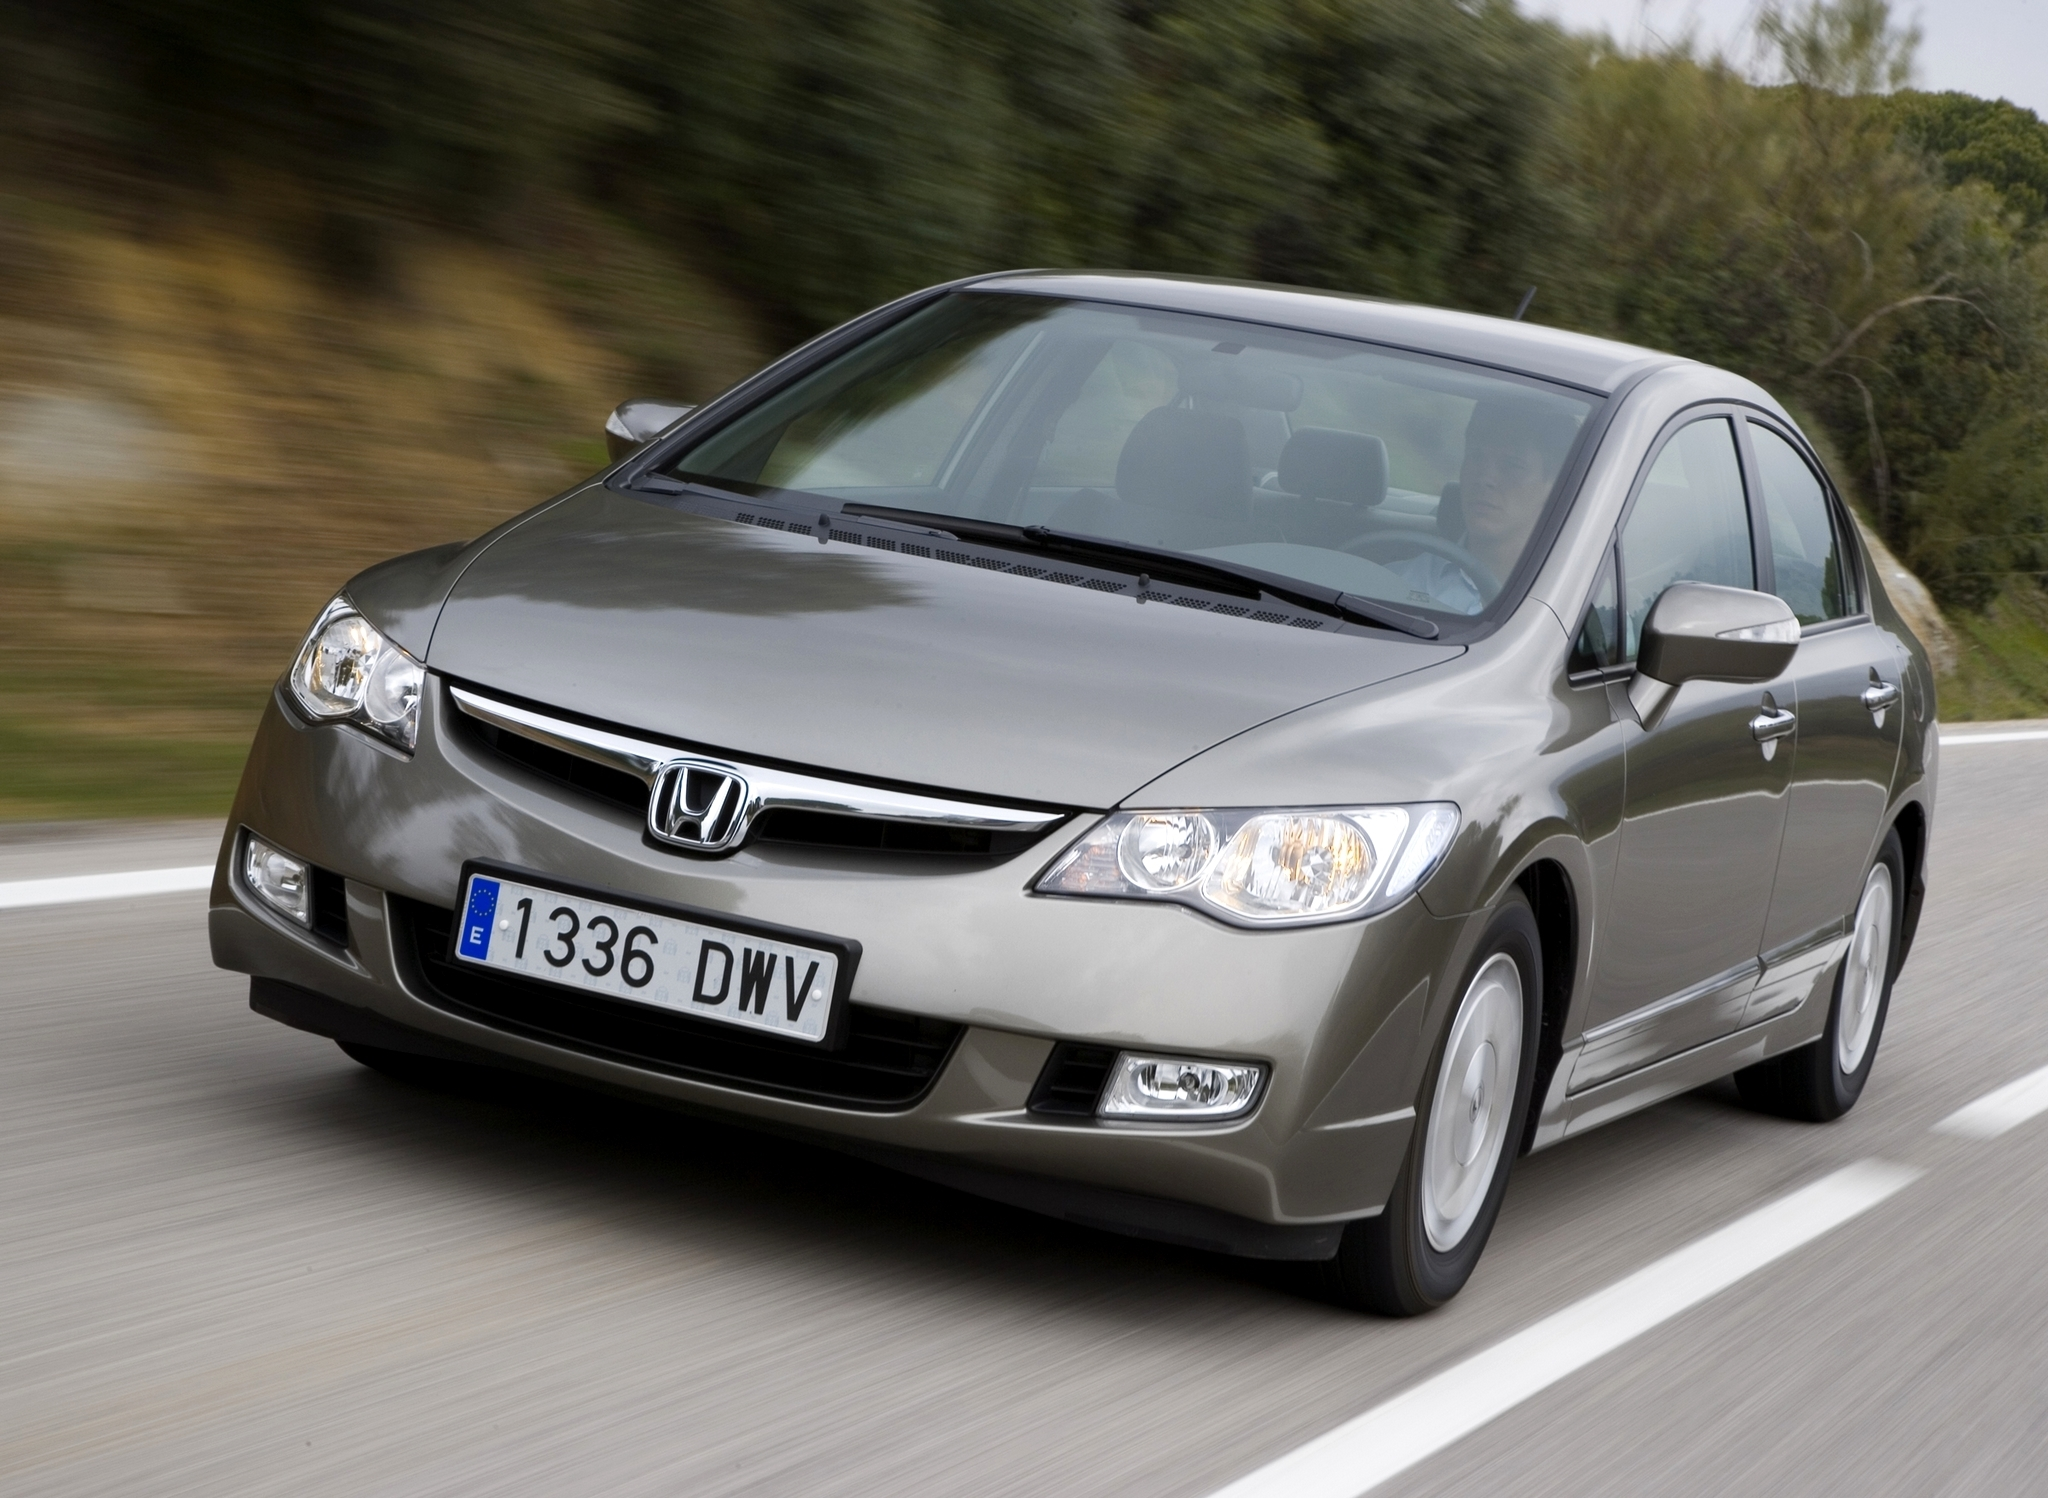 Honda Civic Hybrid 2010 Exterior Front End